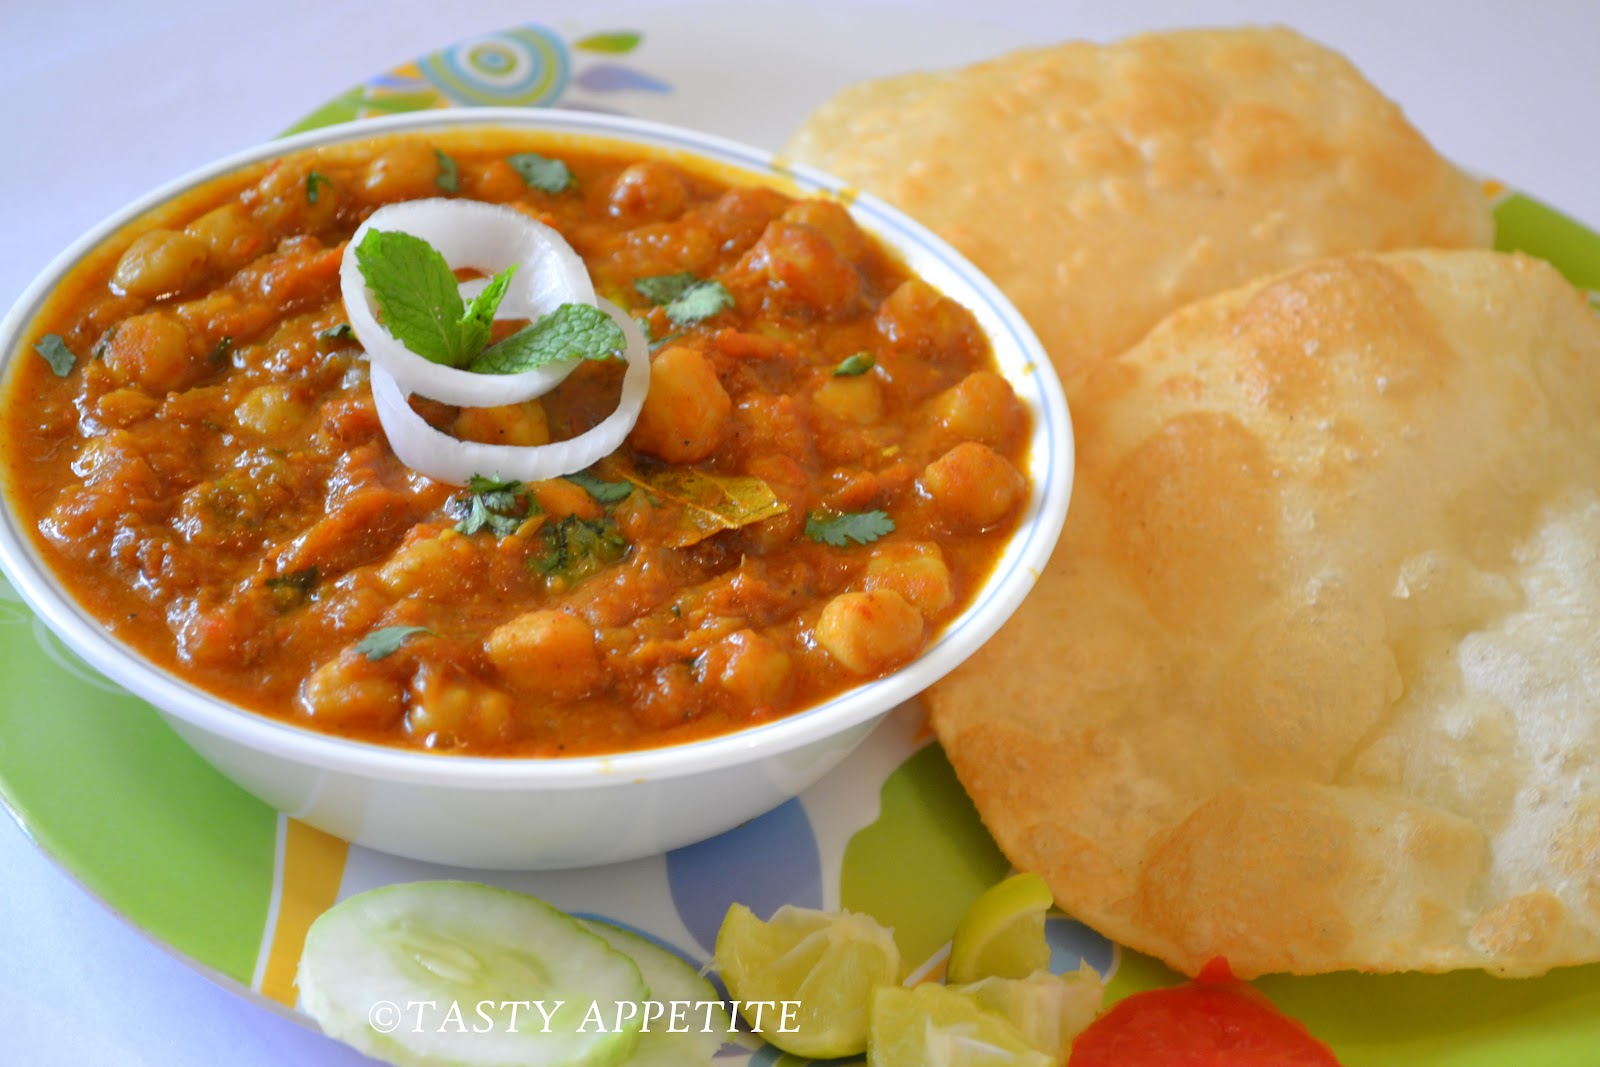 chole bhature indian cooking recipes cuisines of india authentic gourmet recipes easy. Black Bedroom Furniture Sets. Home Design Ideas